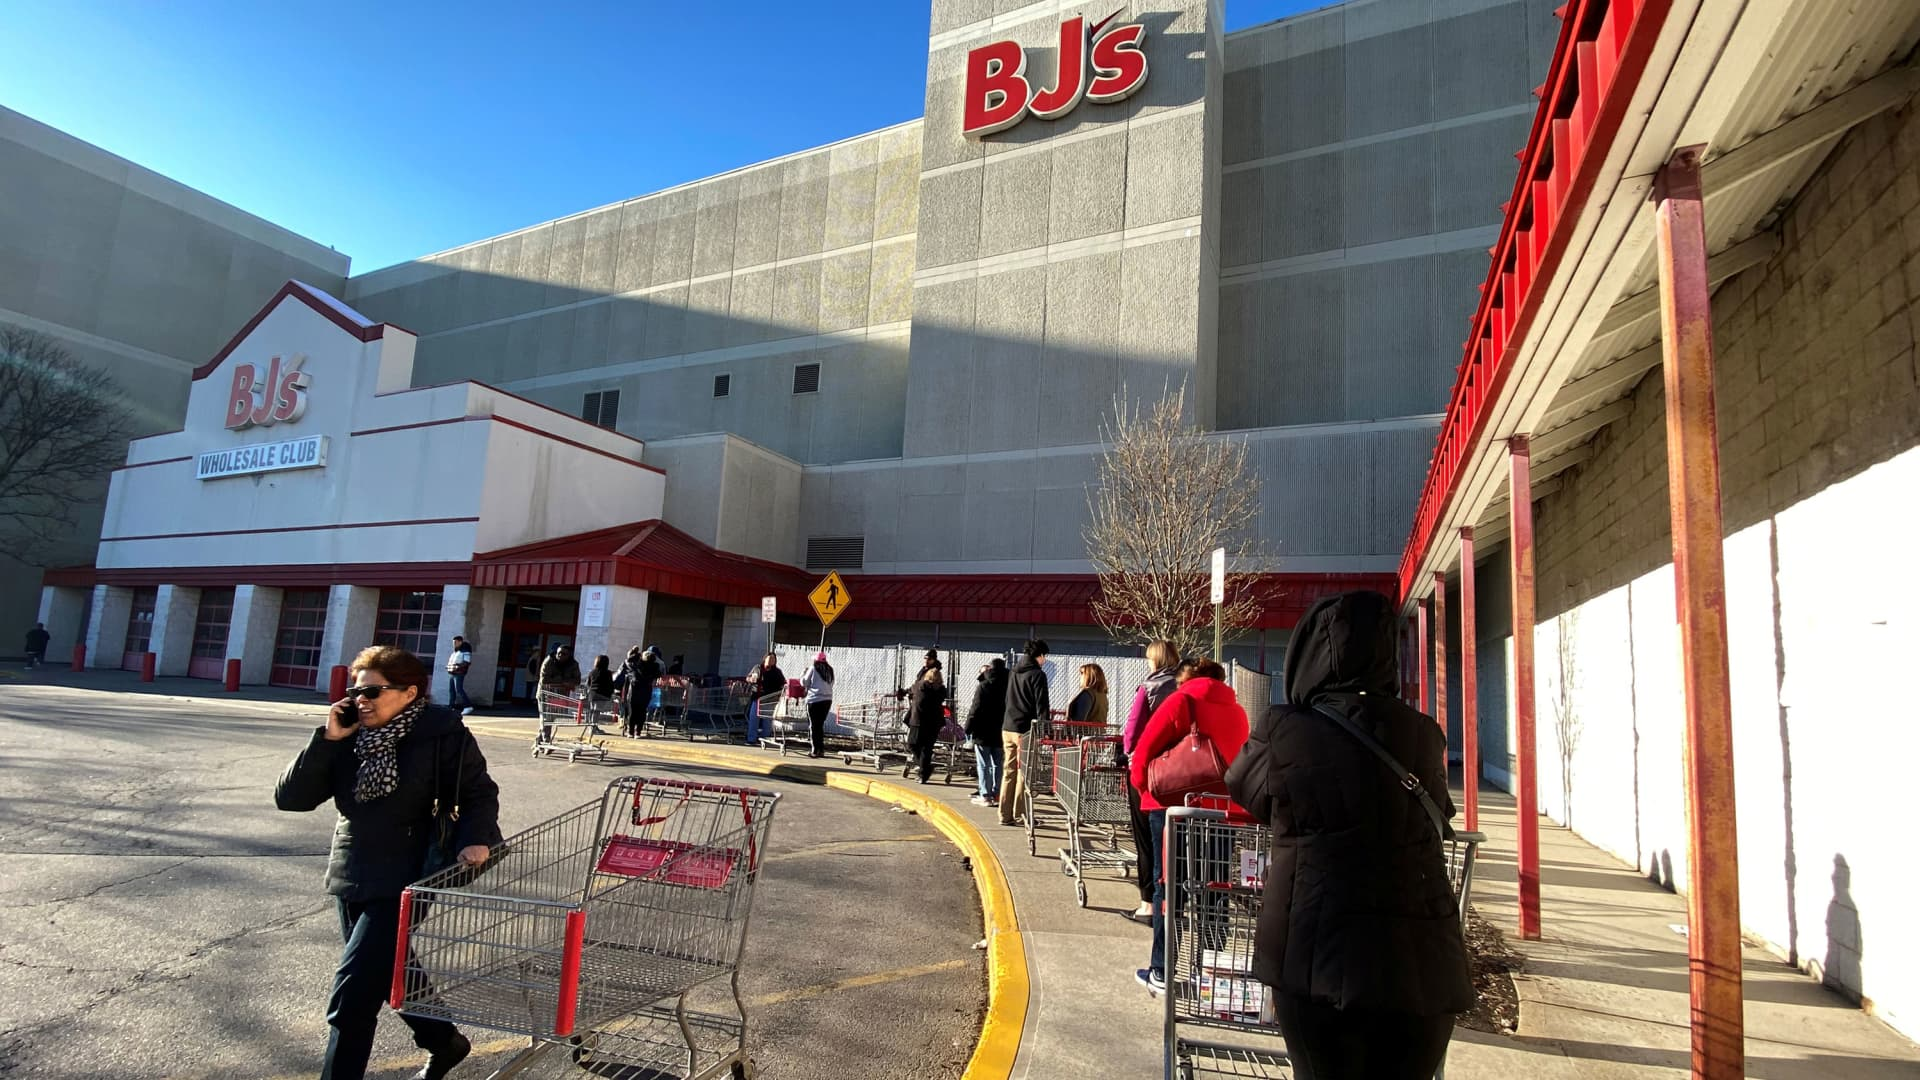 A line of shoppers wait to enter BJ's Wholesale Club market at the Palisades Center shopping mall during the coronavirus outbreak in West Nyack, New York, March 14, 2020.